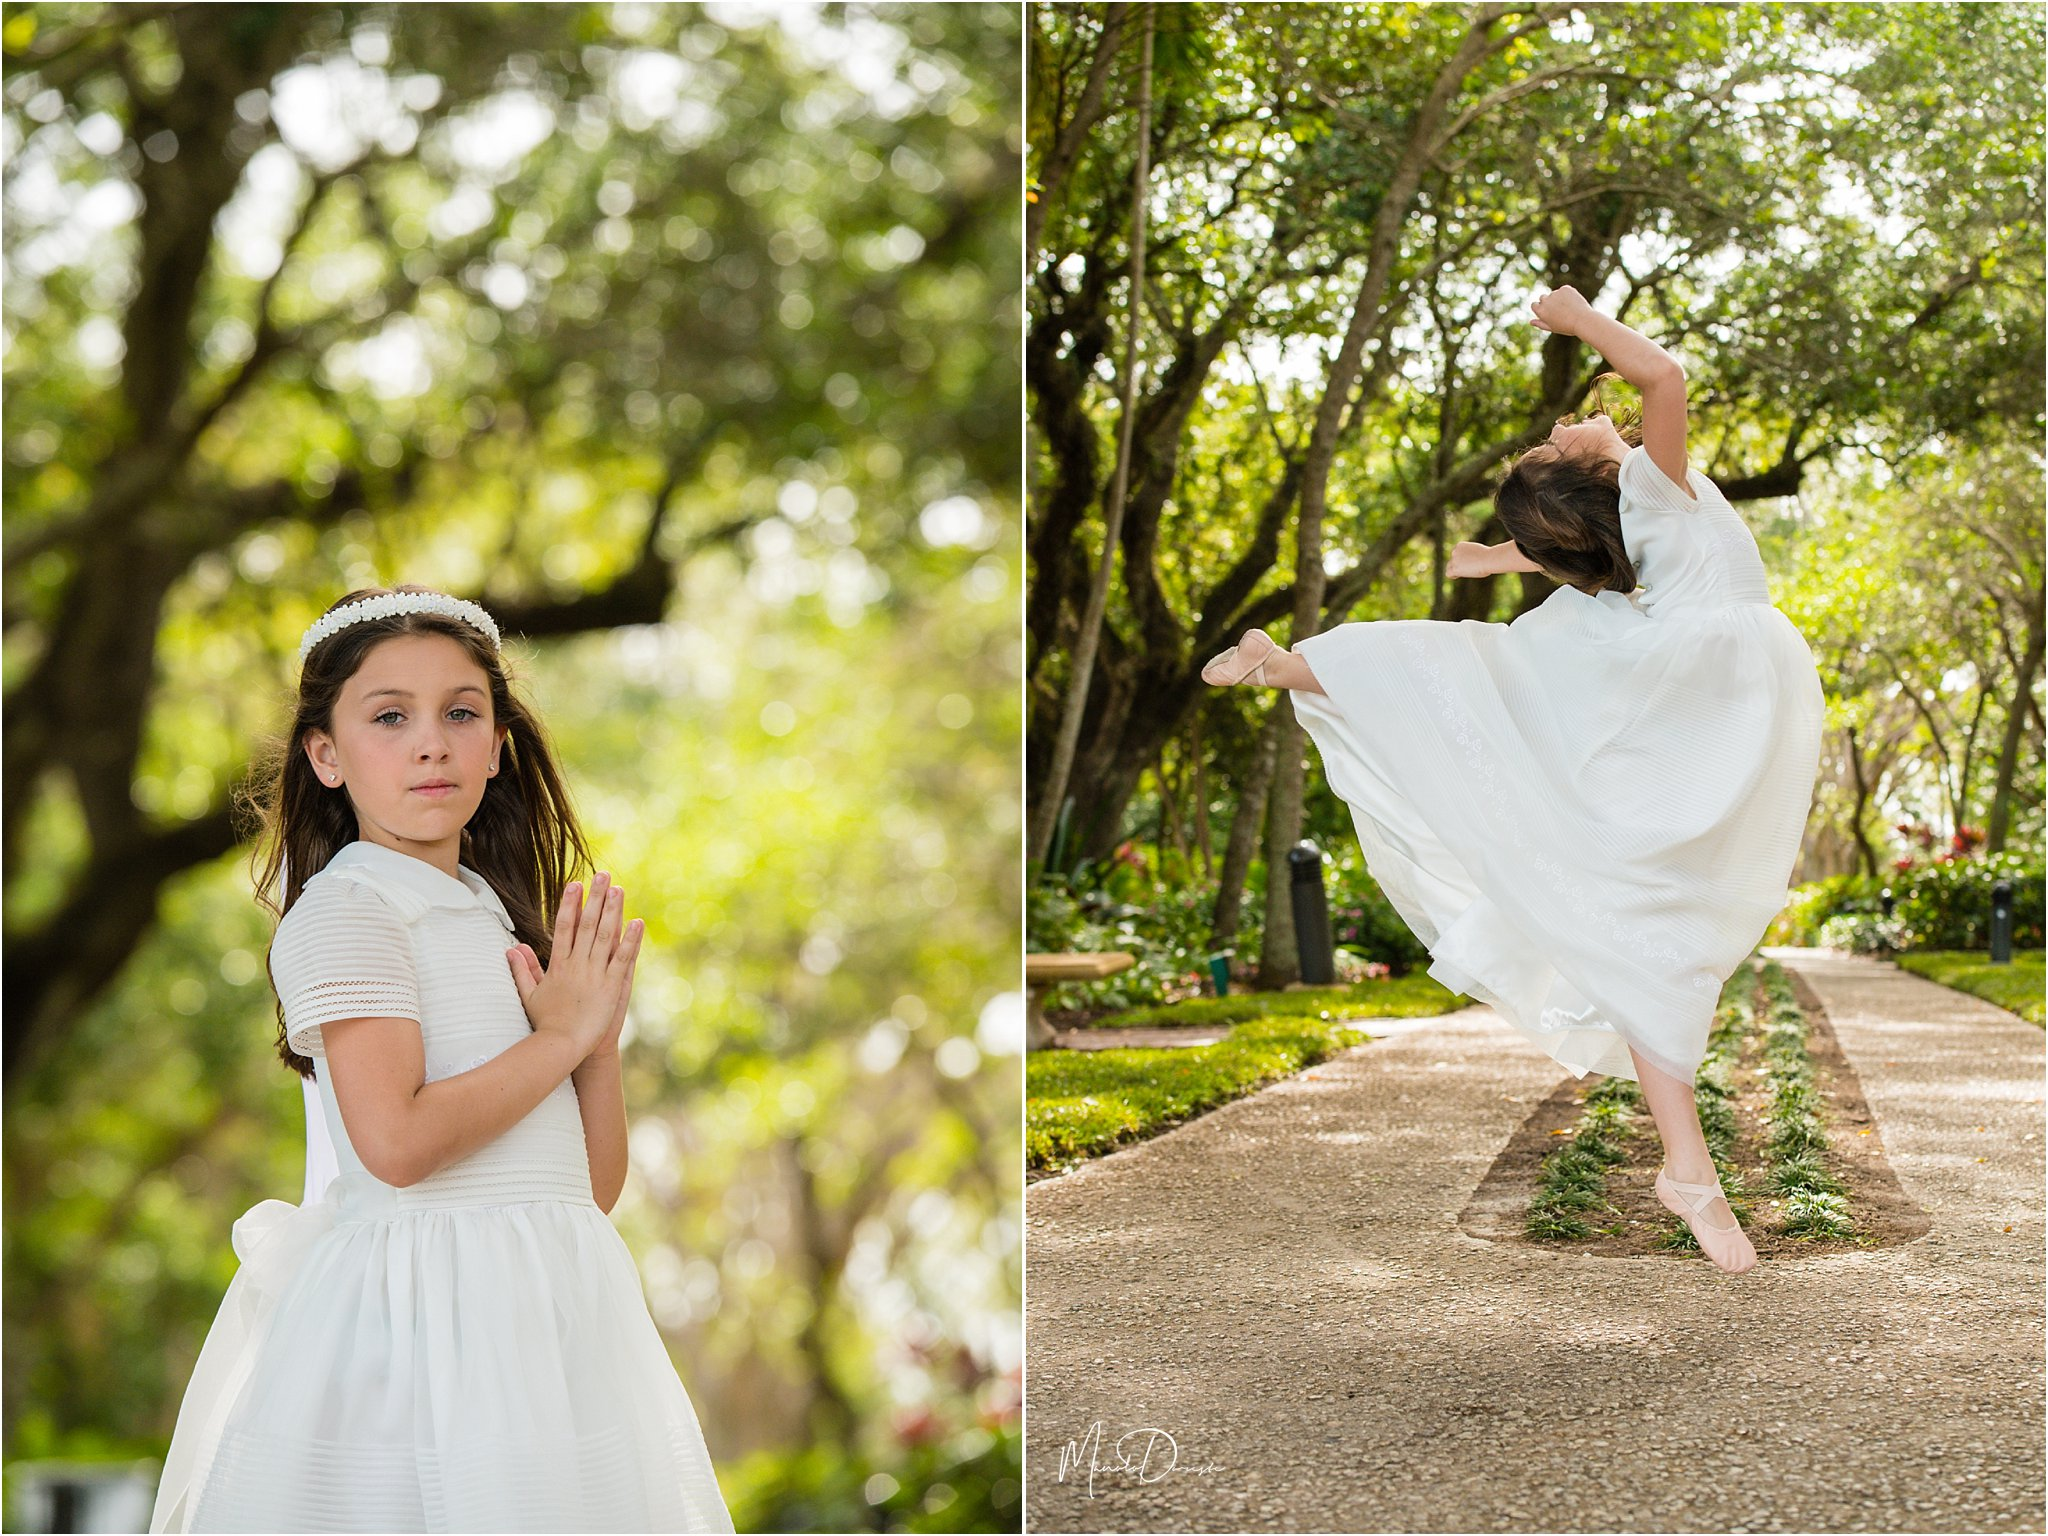 0628_ManoloDoreste_InFocusStudios_Wedding_Family_Photography_Miami_MiamiPhotographer.jpg